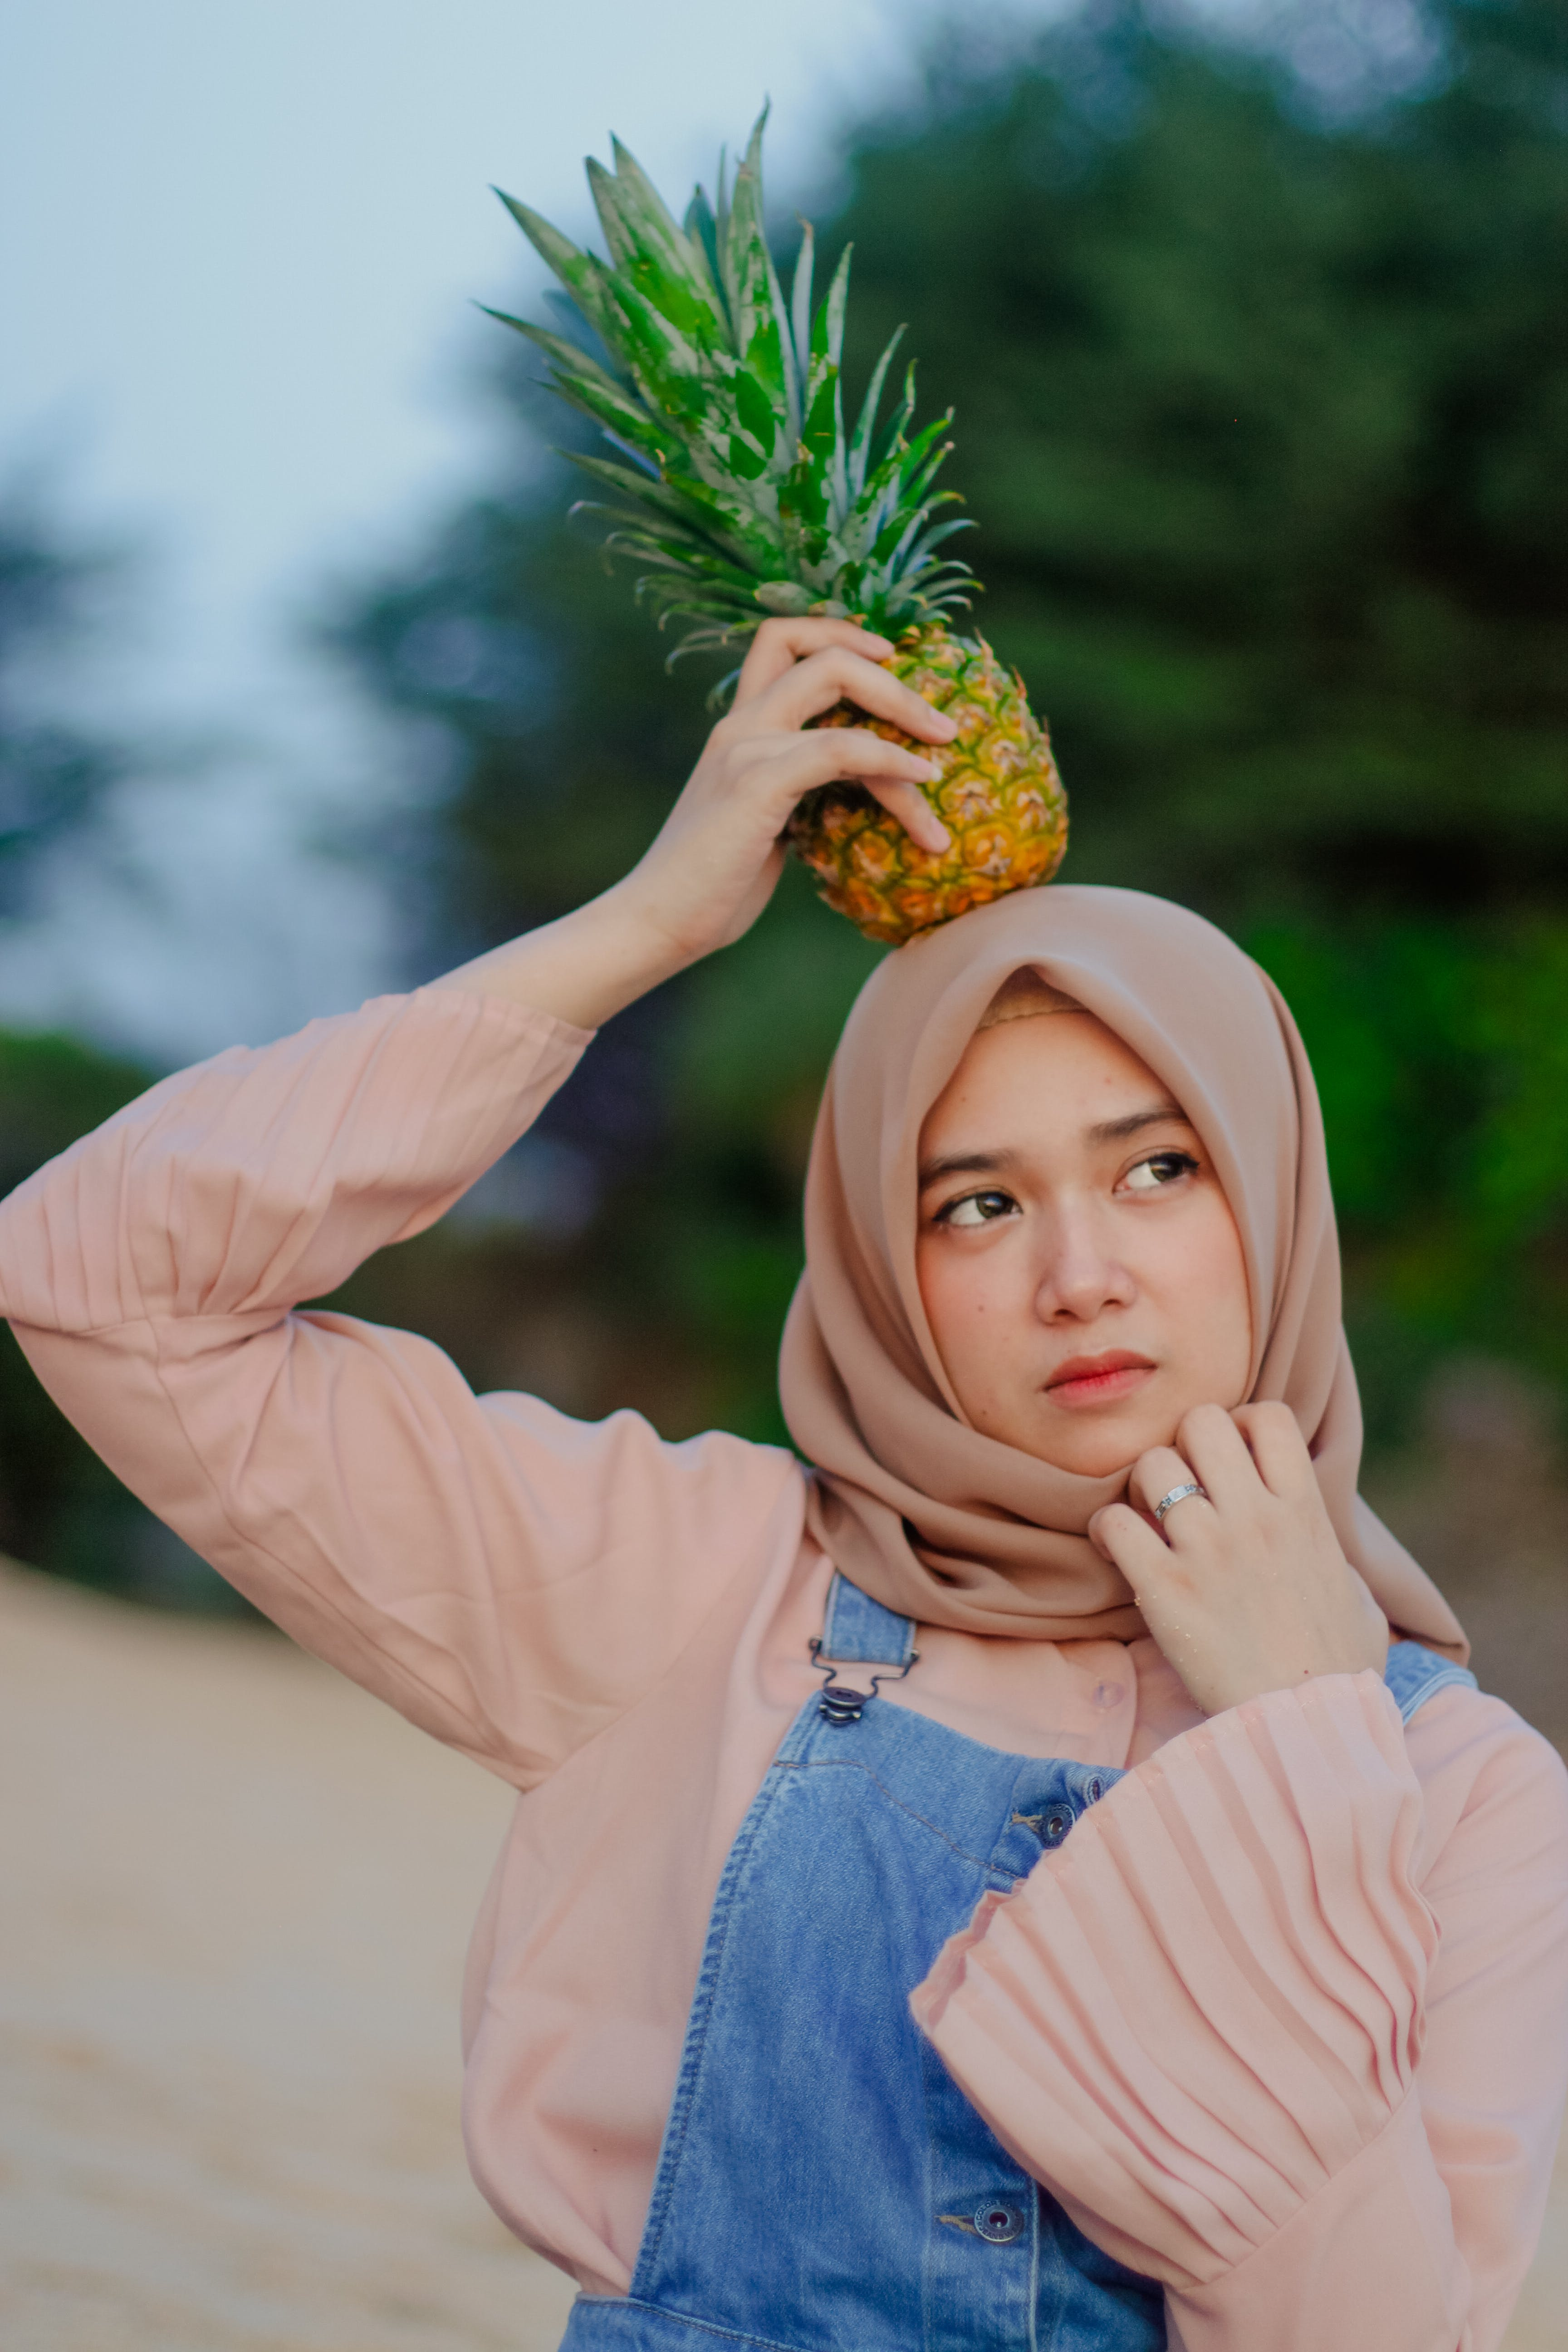 Woman Holding Pineapple on Her Head